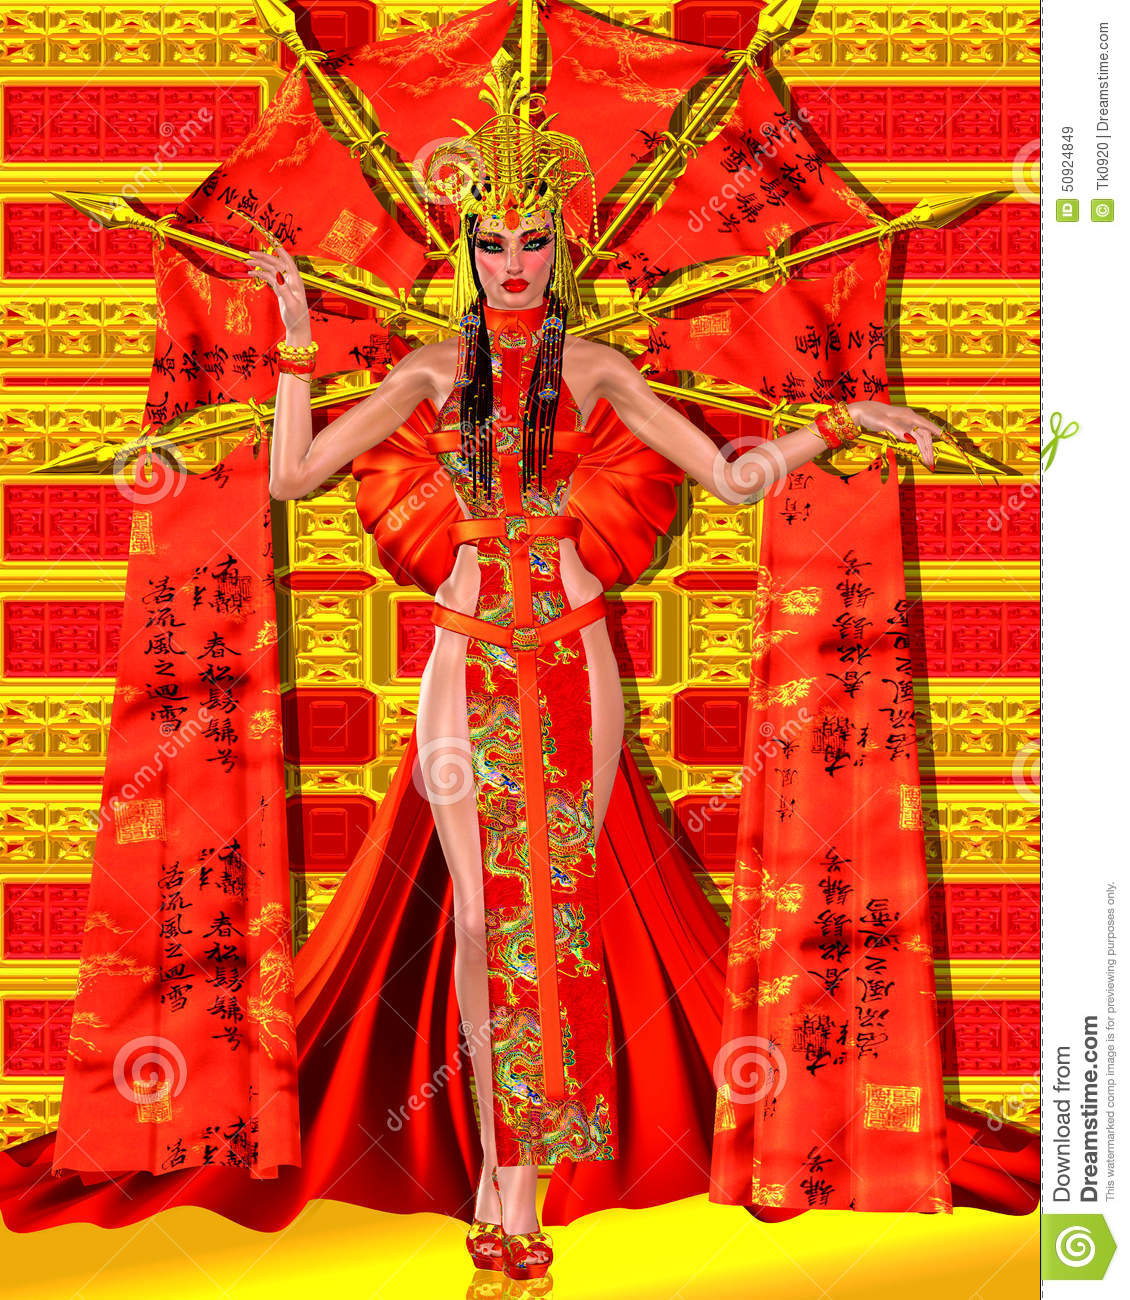 Asian beauty with red and gold fantasy outfit and background.